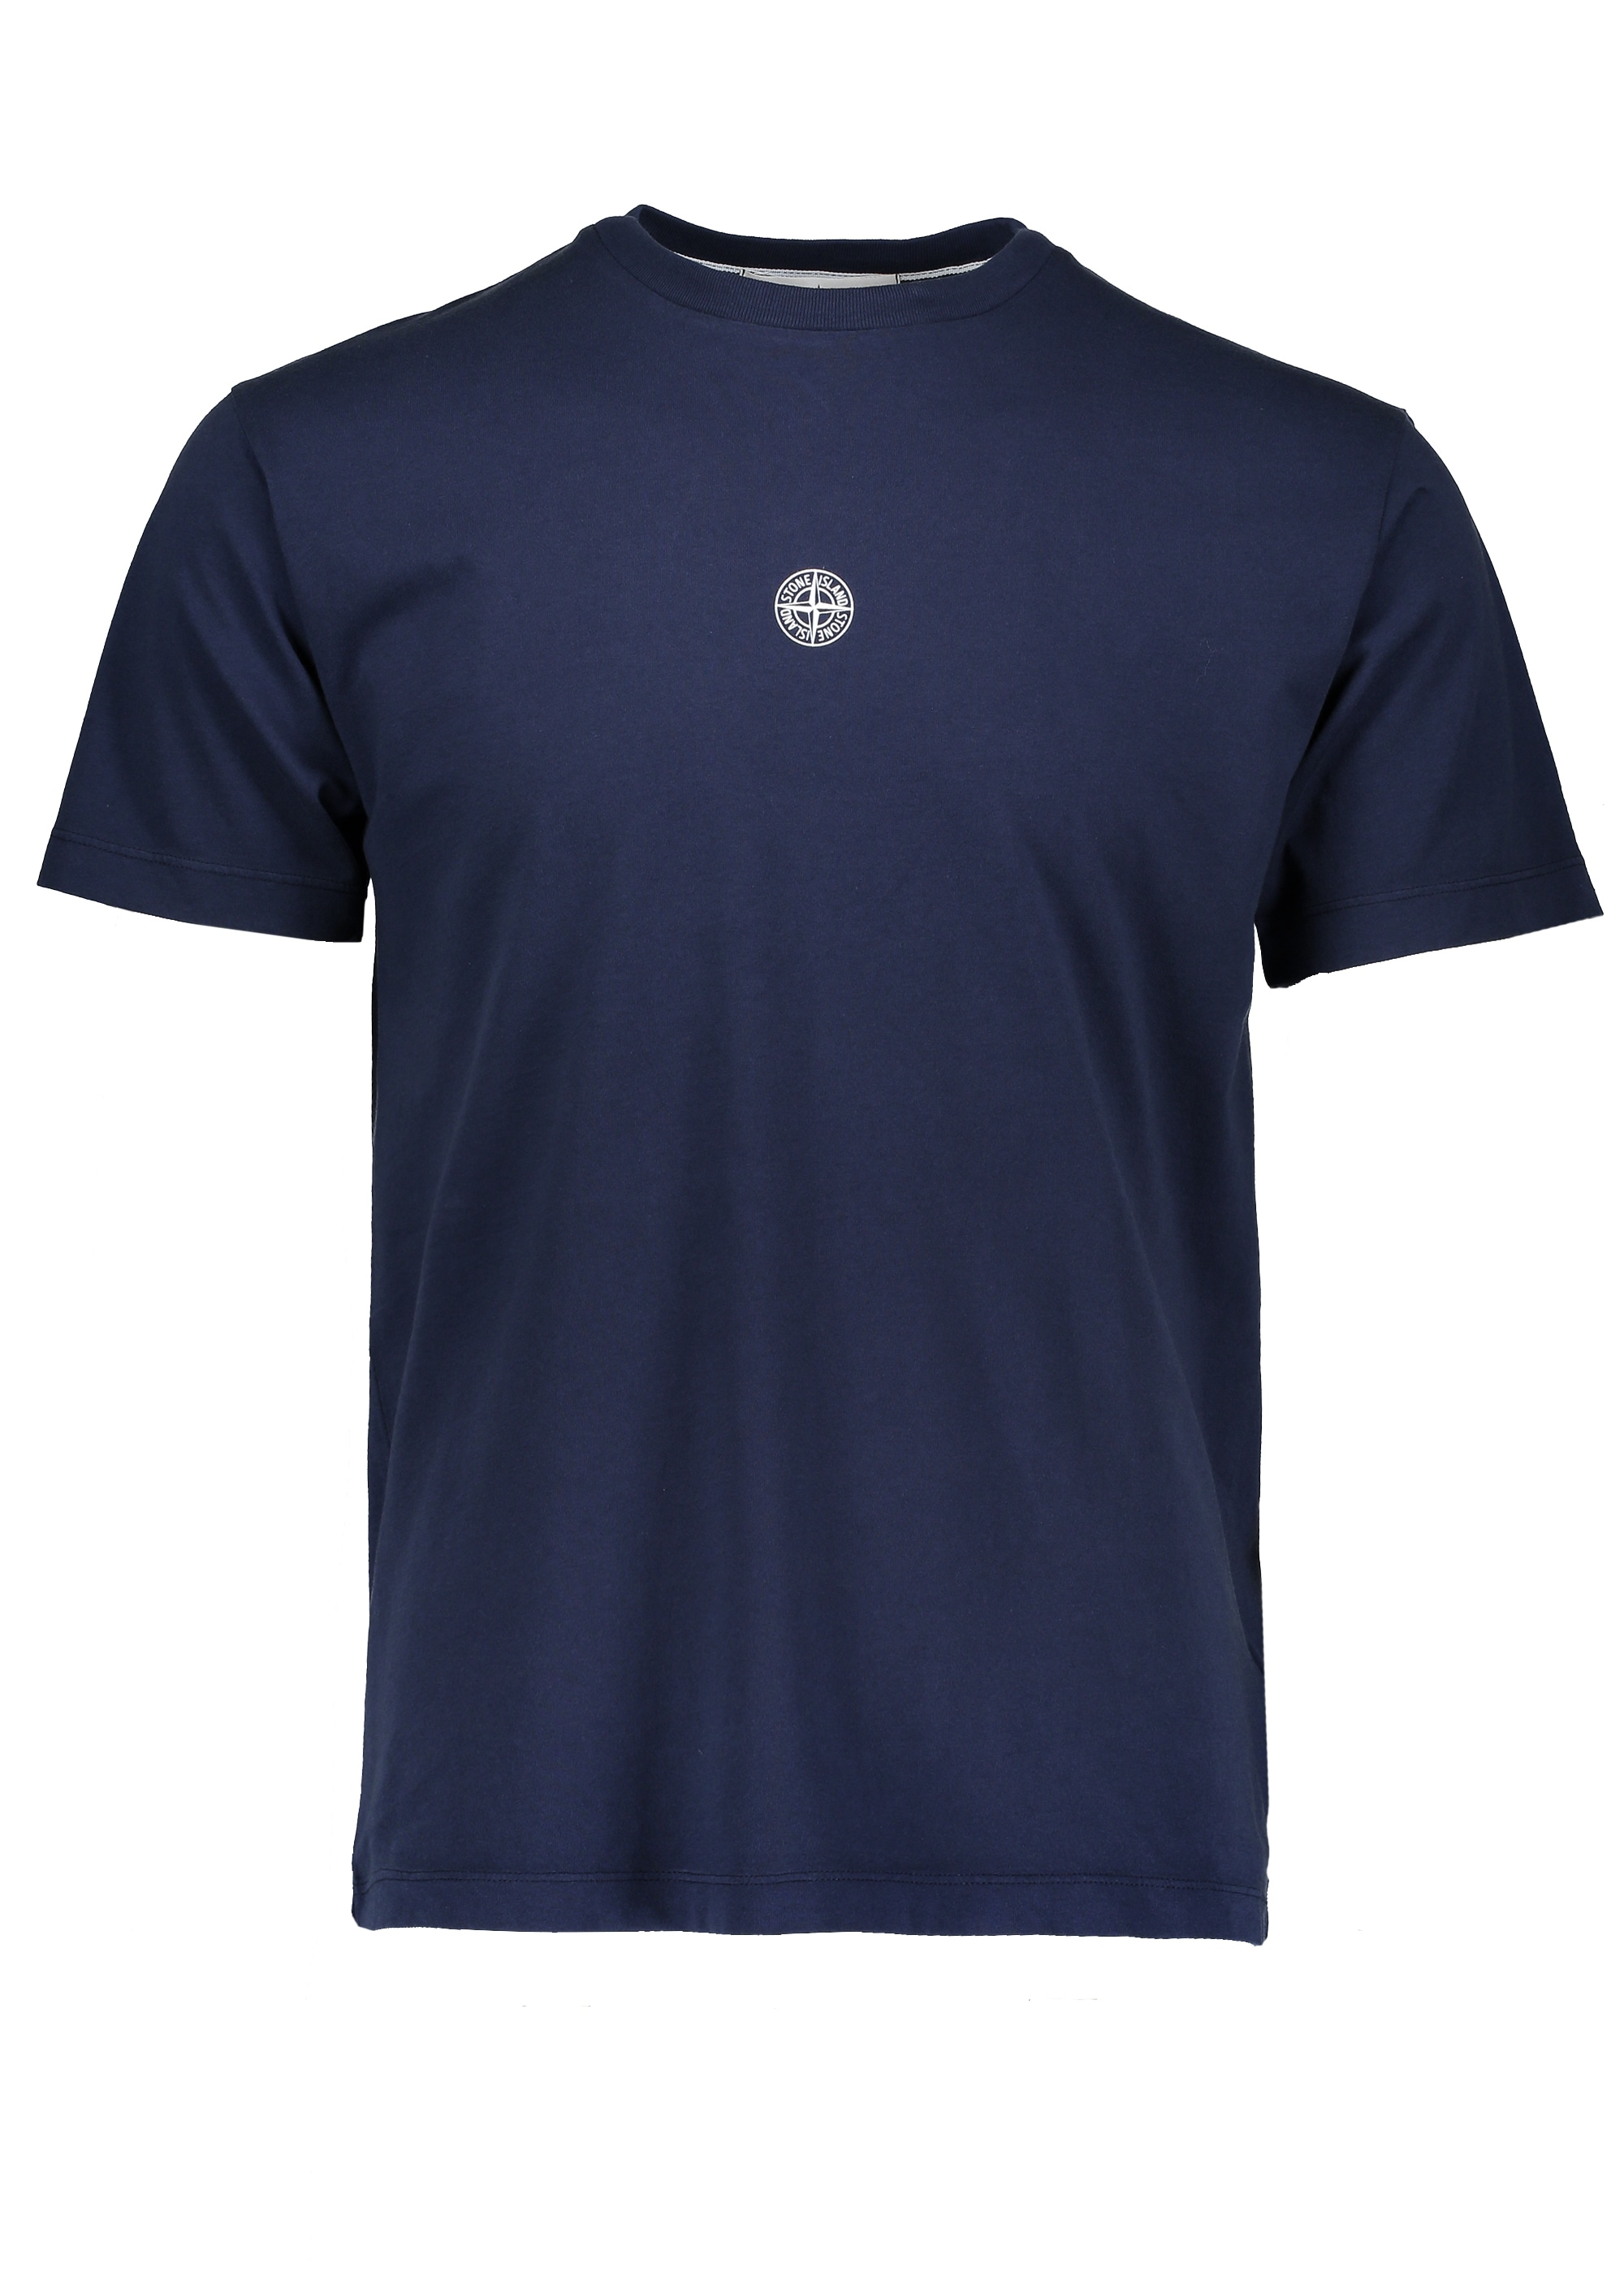 a70bbbc85 Stone Island Graphic Eleven Print Logo Tee - Ink - Triads Mens from ...